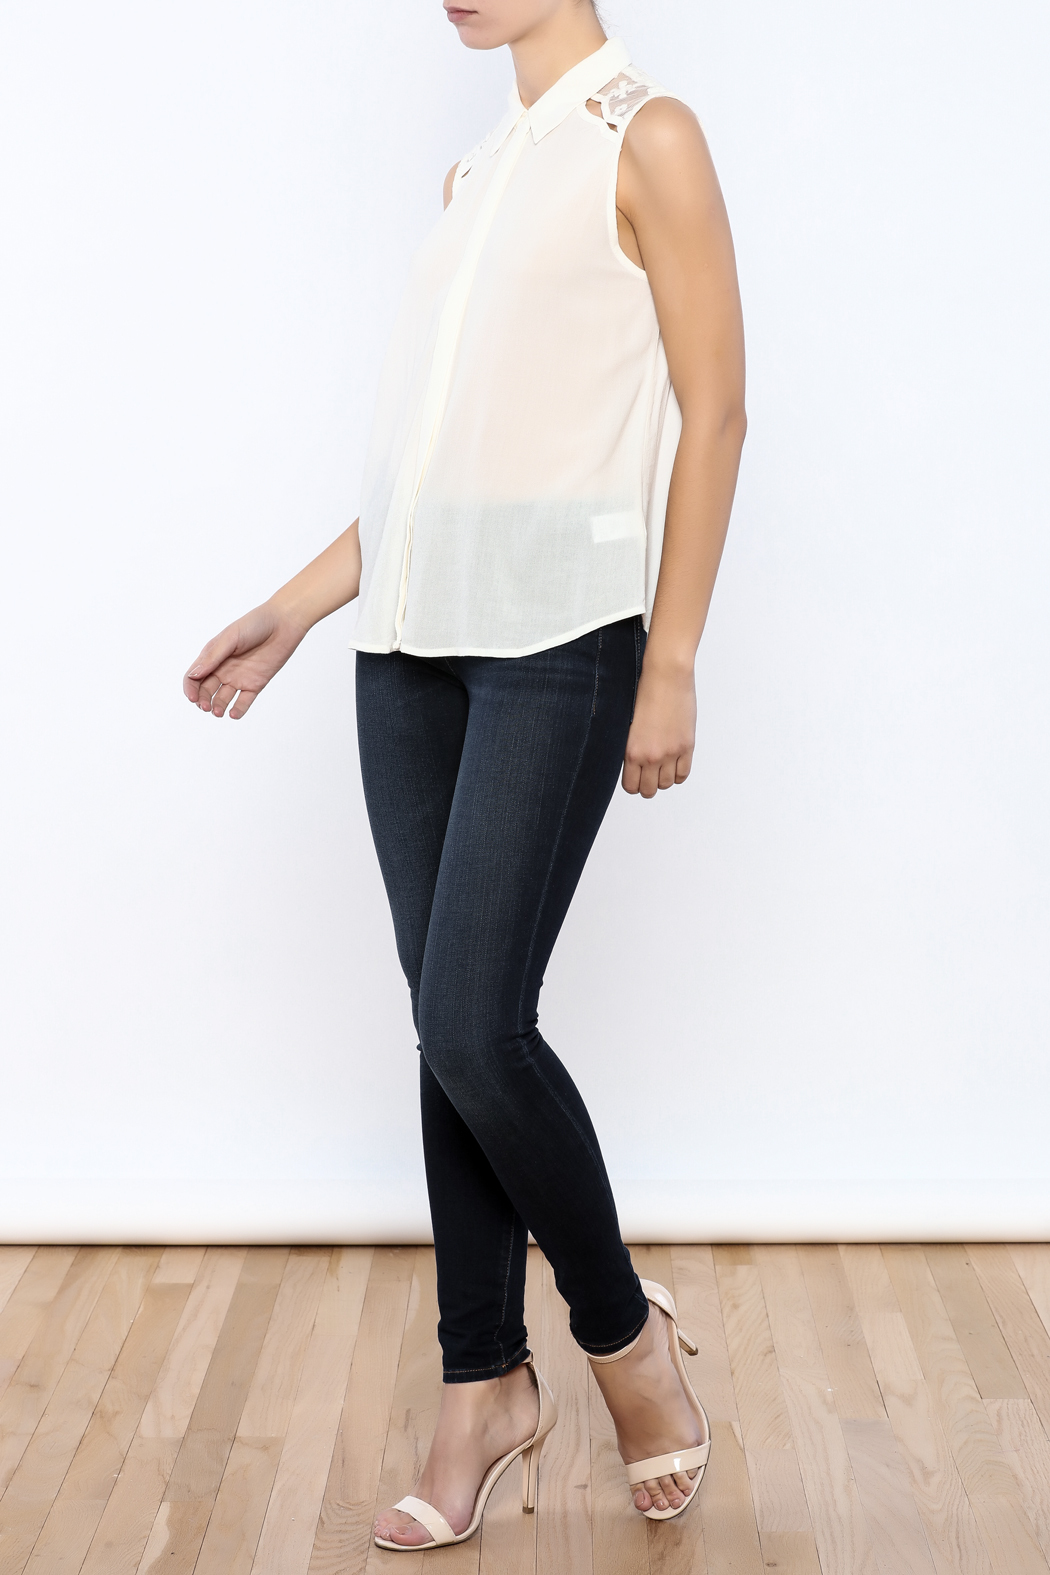 Bacio Lace Back Top - Front Full Image